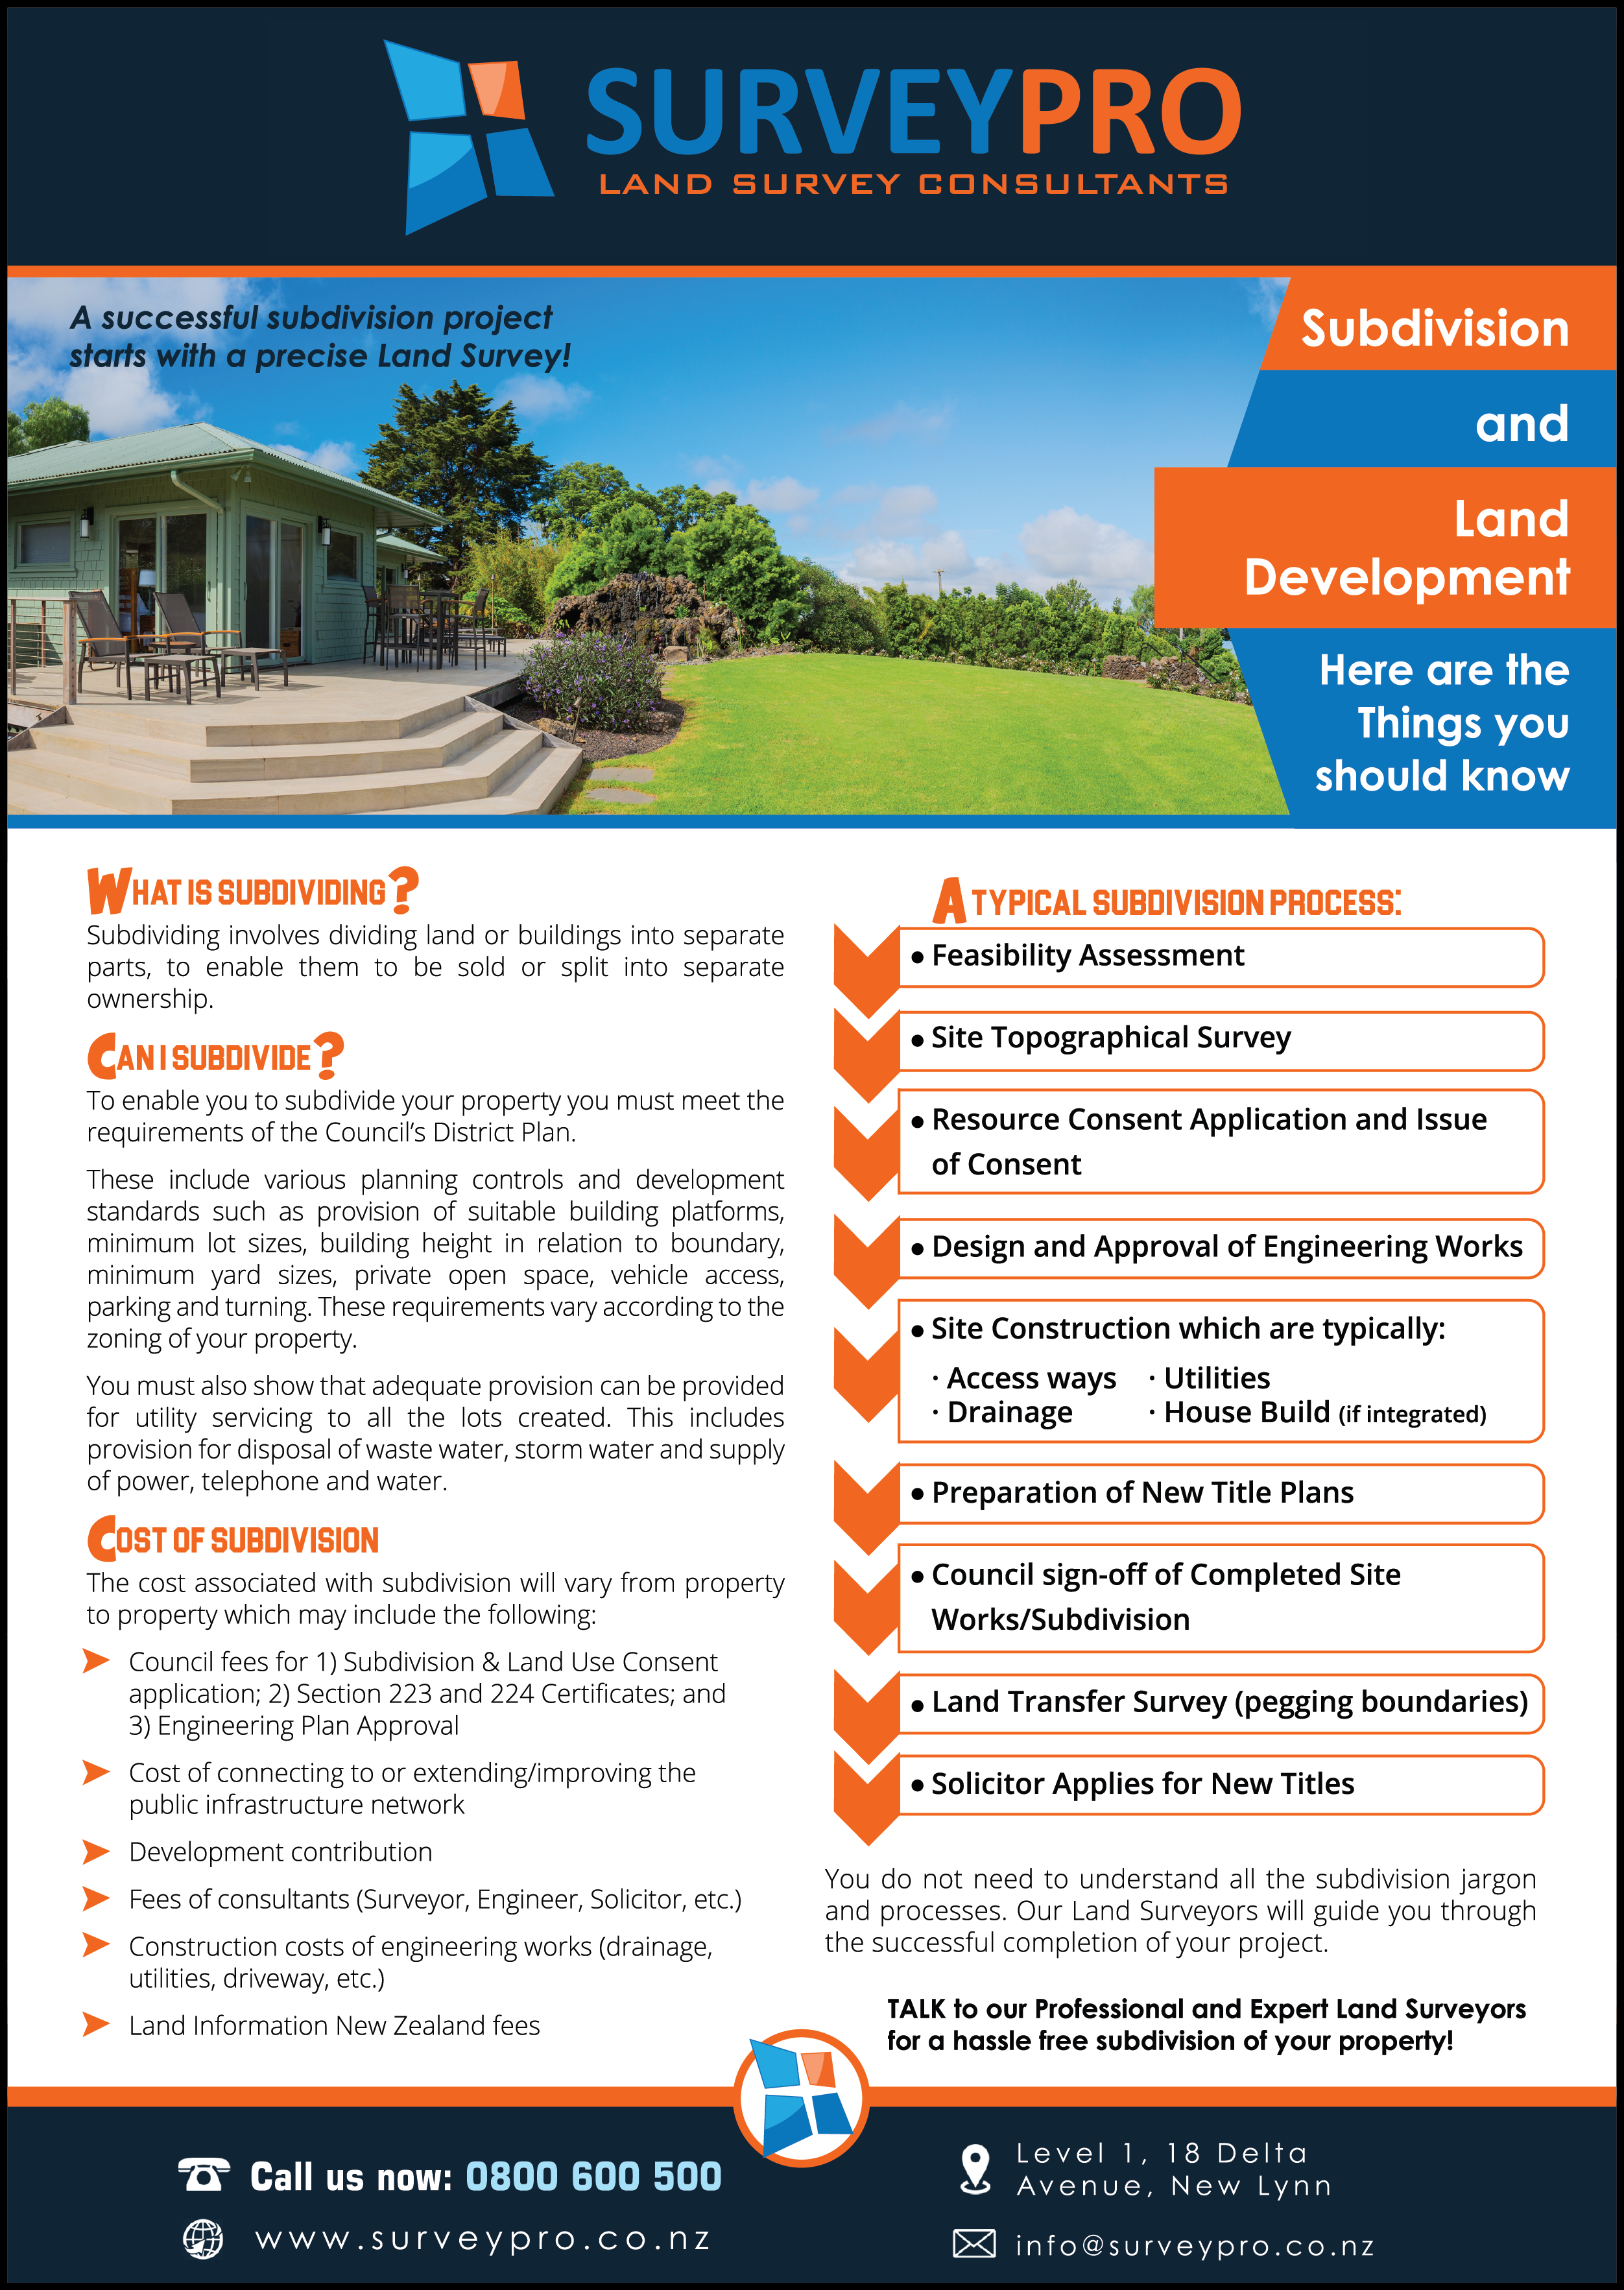 guide-to-subdivision-and-land-development - SurveyPro